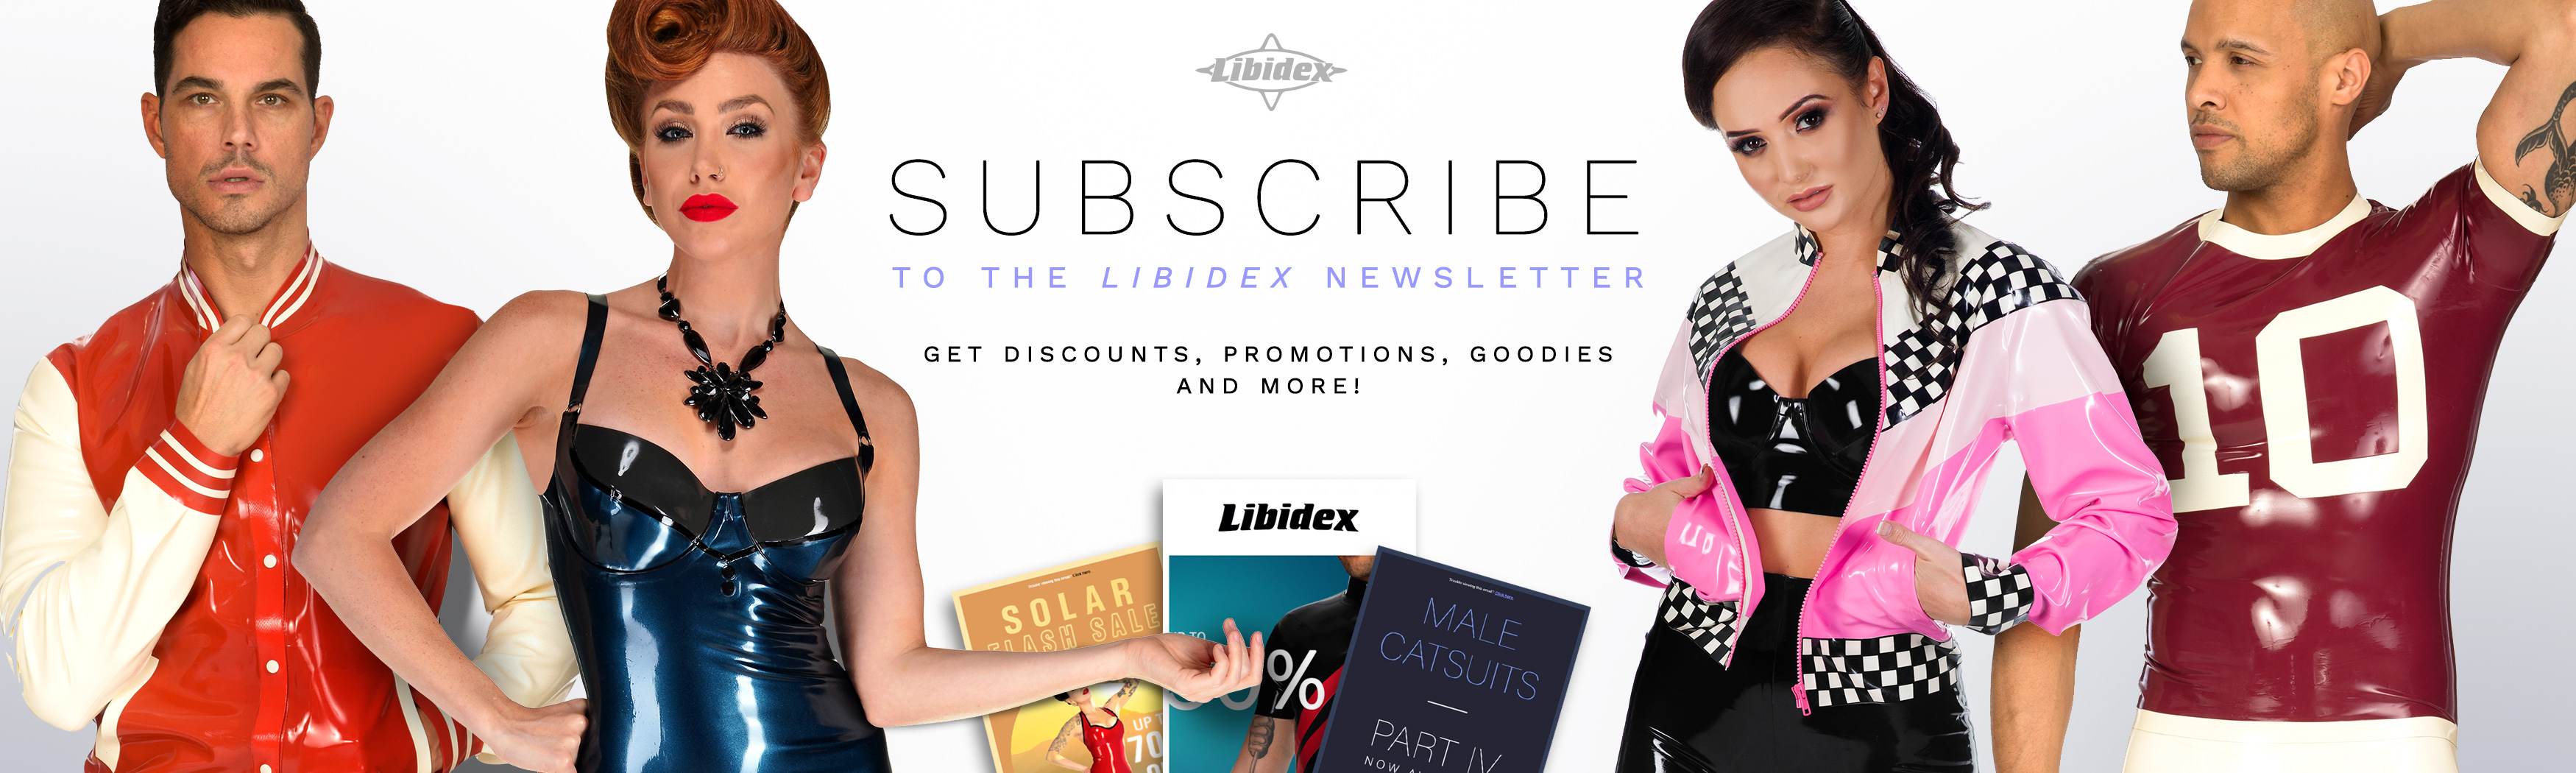 Subscribe to the Libidex Newsletter